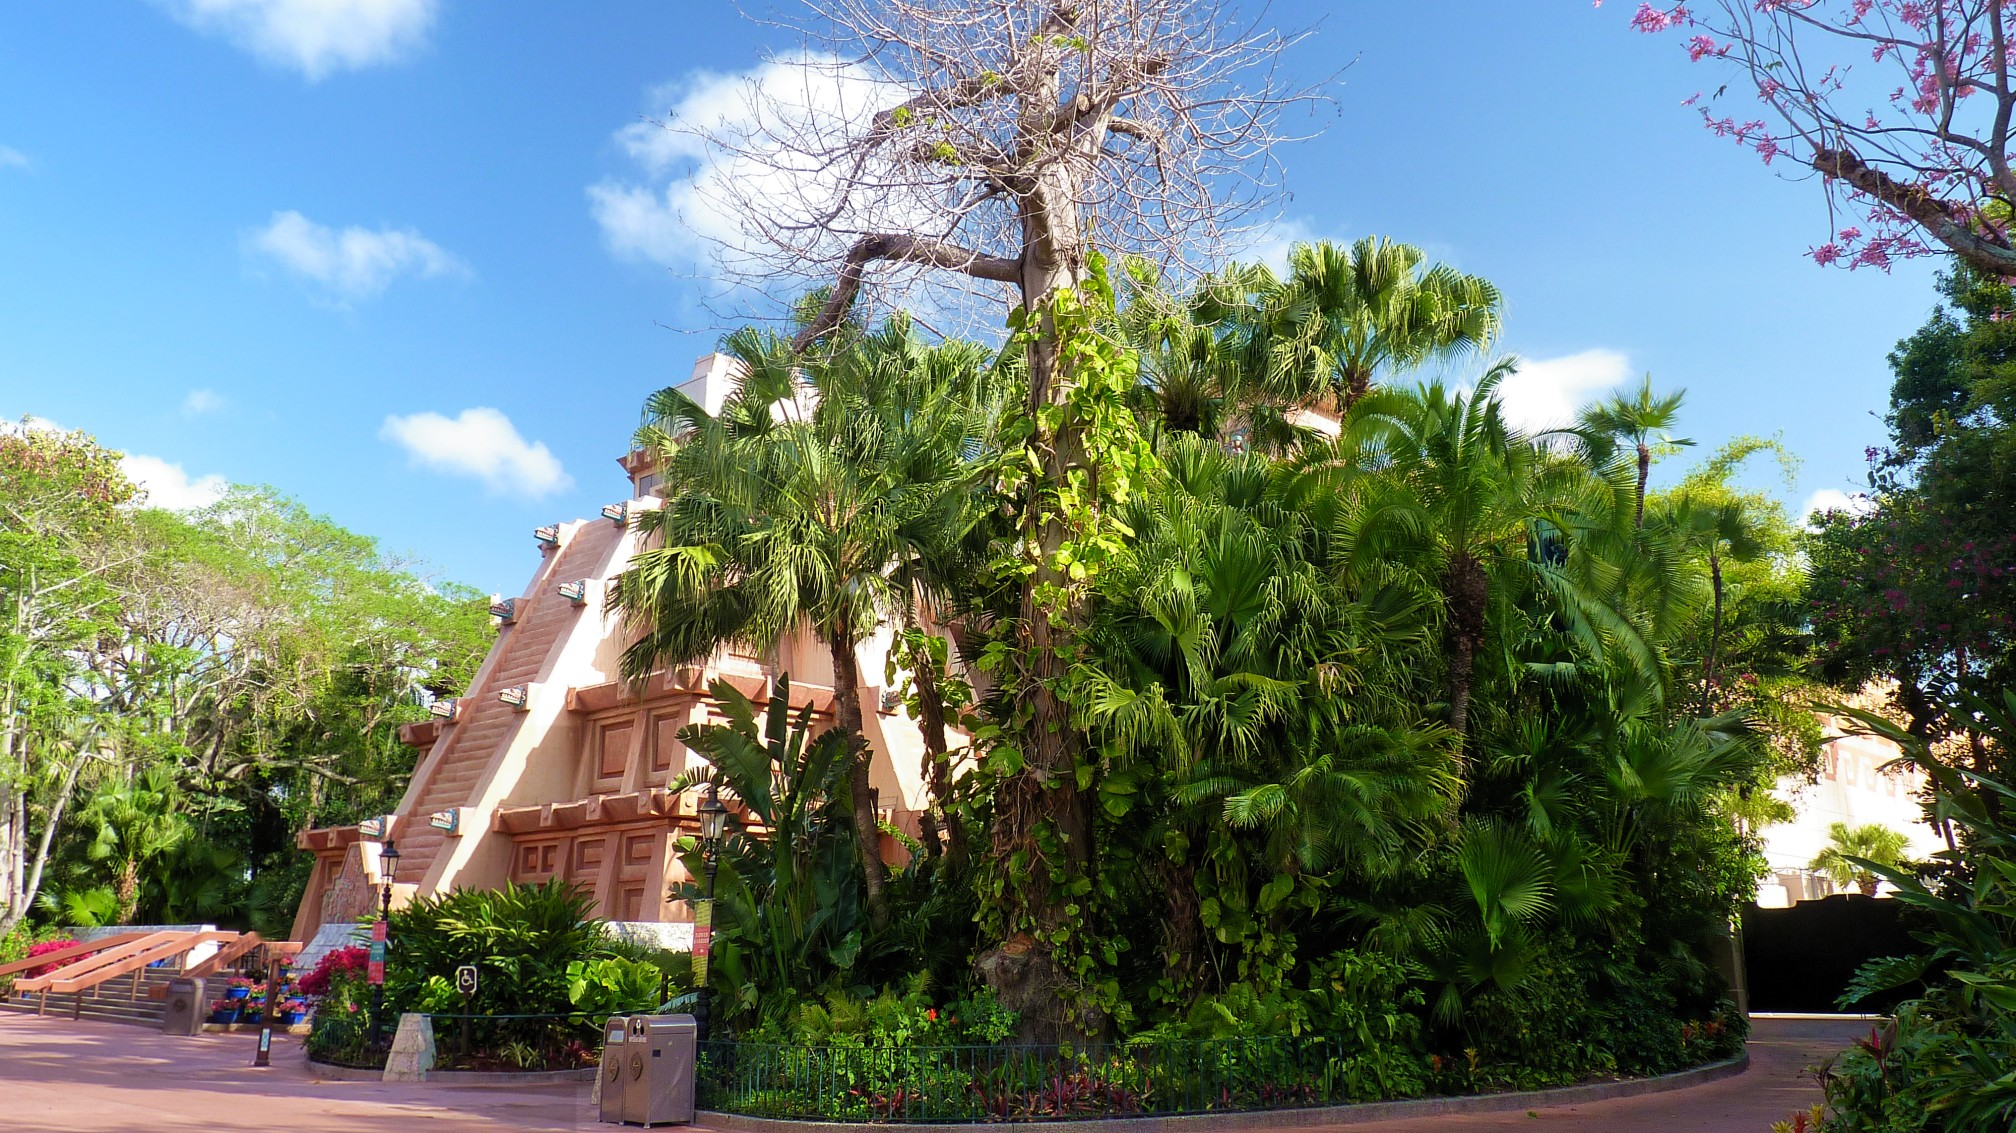 Jud's Disney Picture of the Day: TREE IN MEXICO